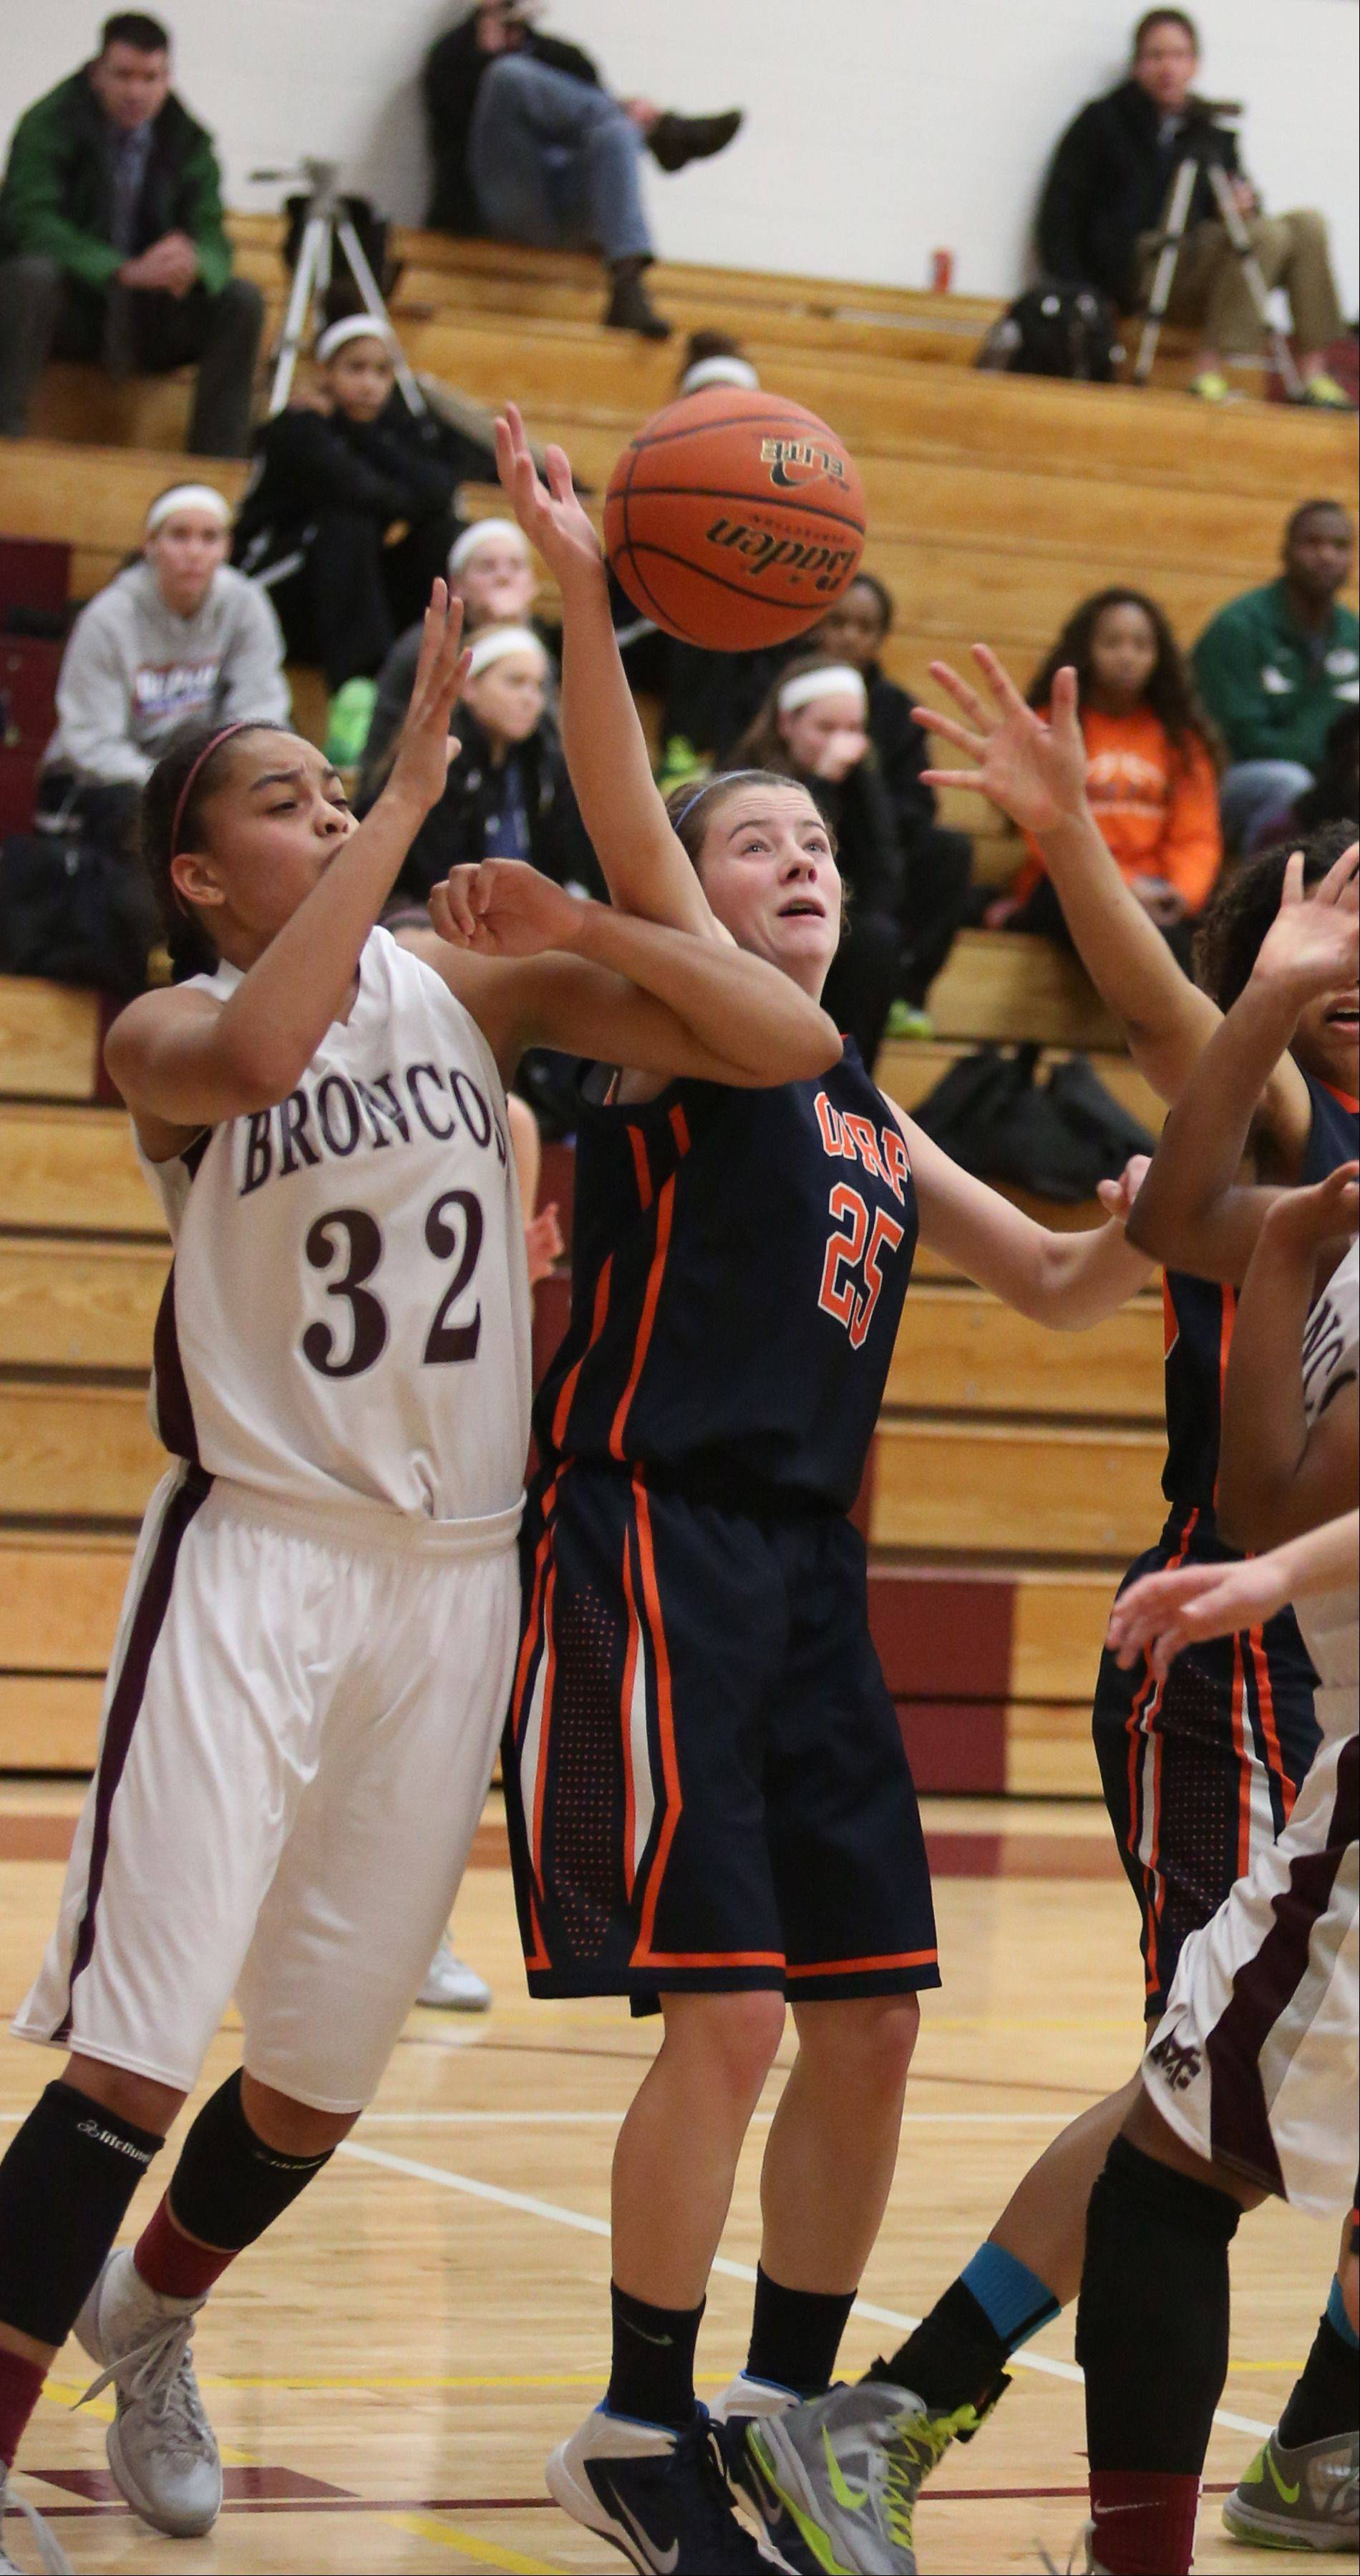 Photos from the Montini vs. Oak Park and River Forest girls basketball game on Monday, Dec. 23.